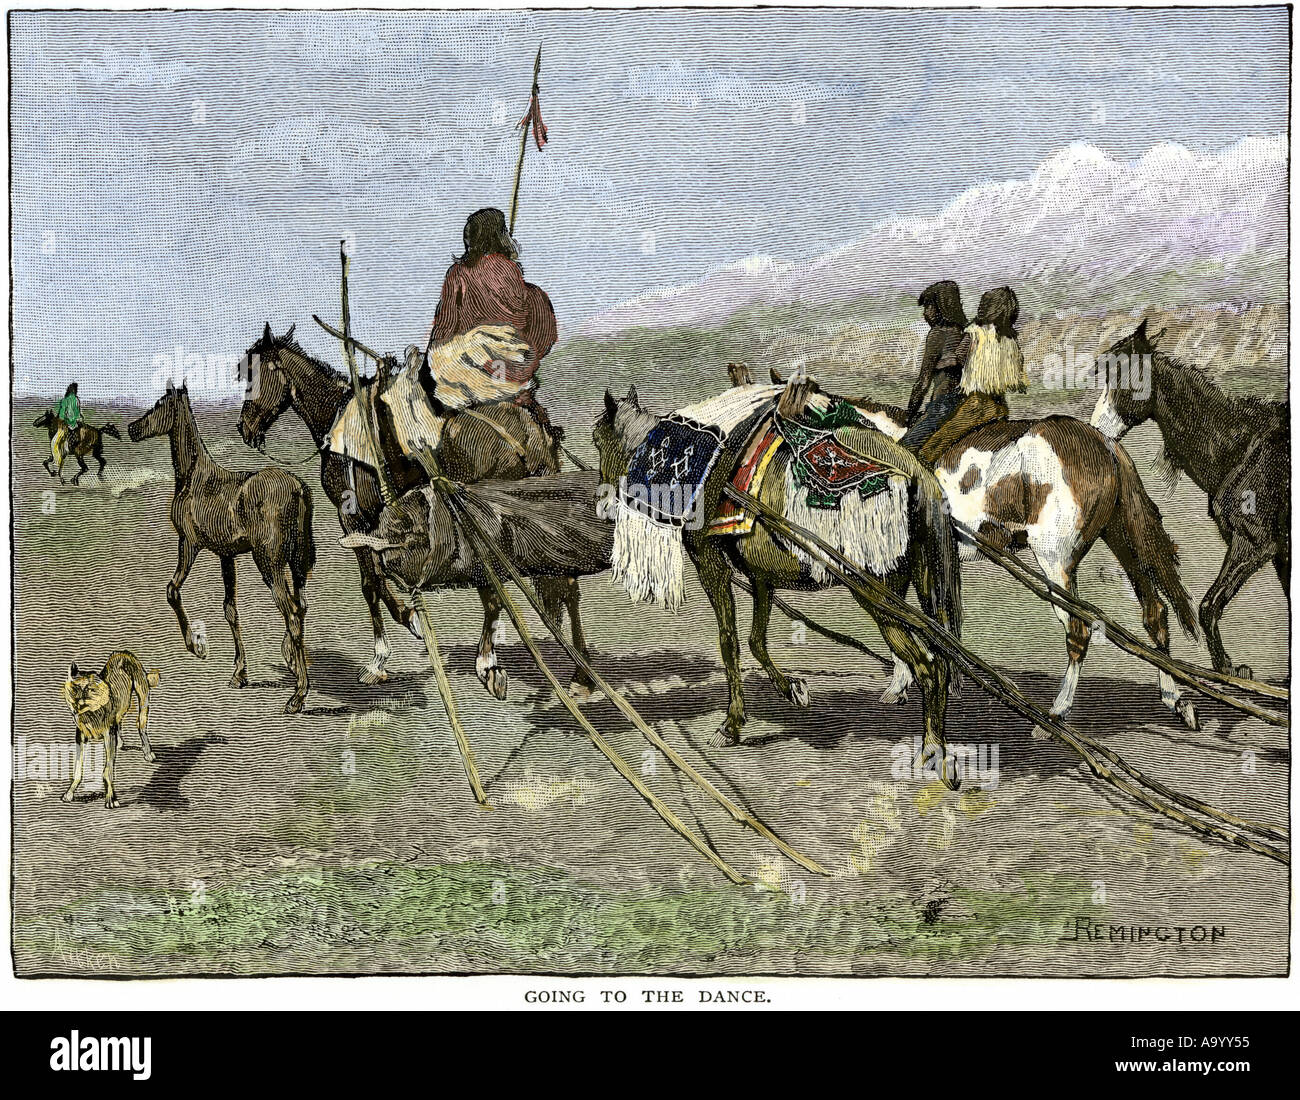 Sioux family riding to a ceremonial dance using a travois for extra belongings. Hand-colored woodcut of a Frederic Remington illustration - Stock Image